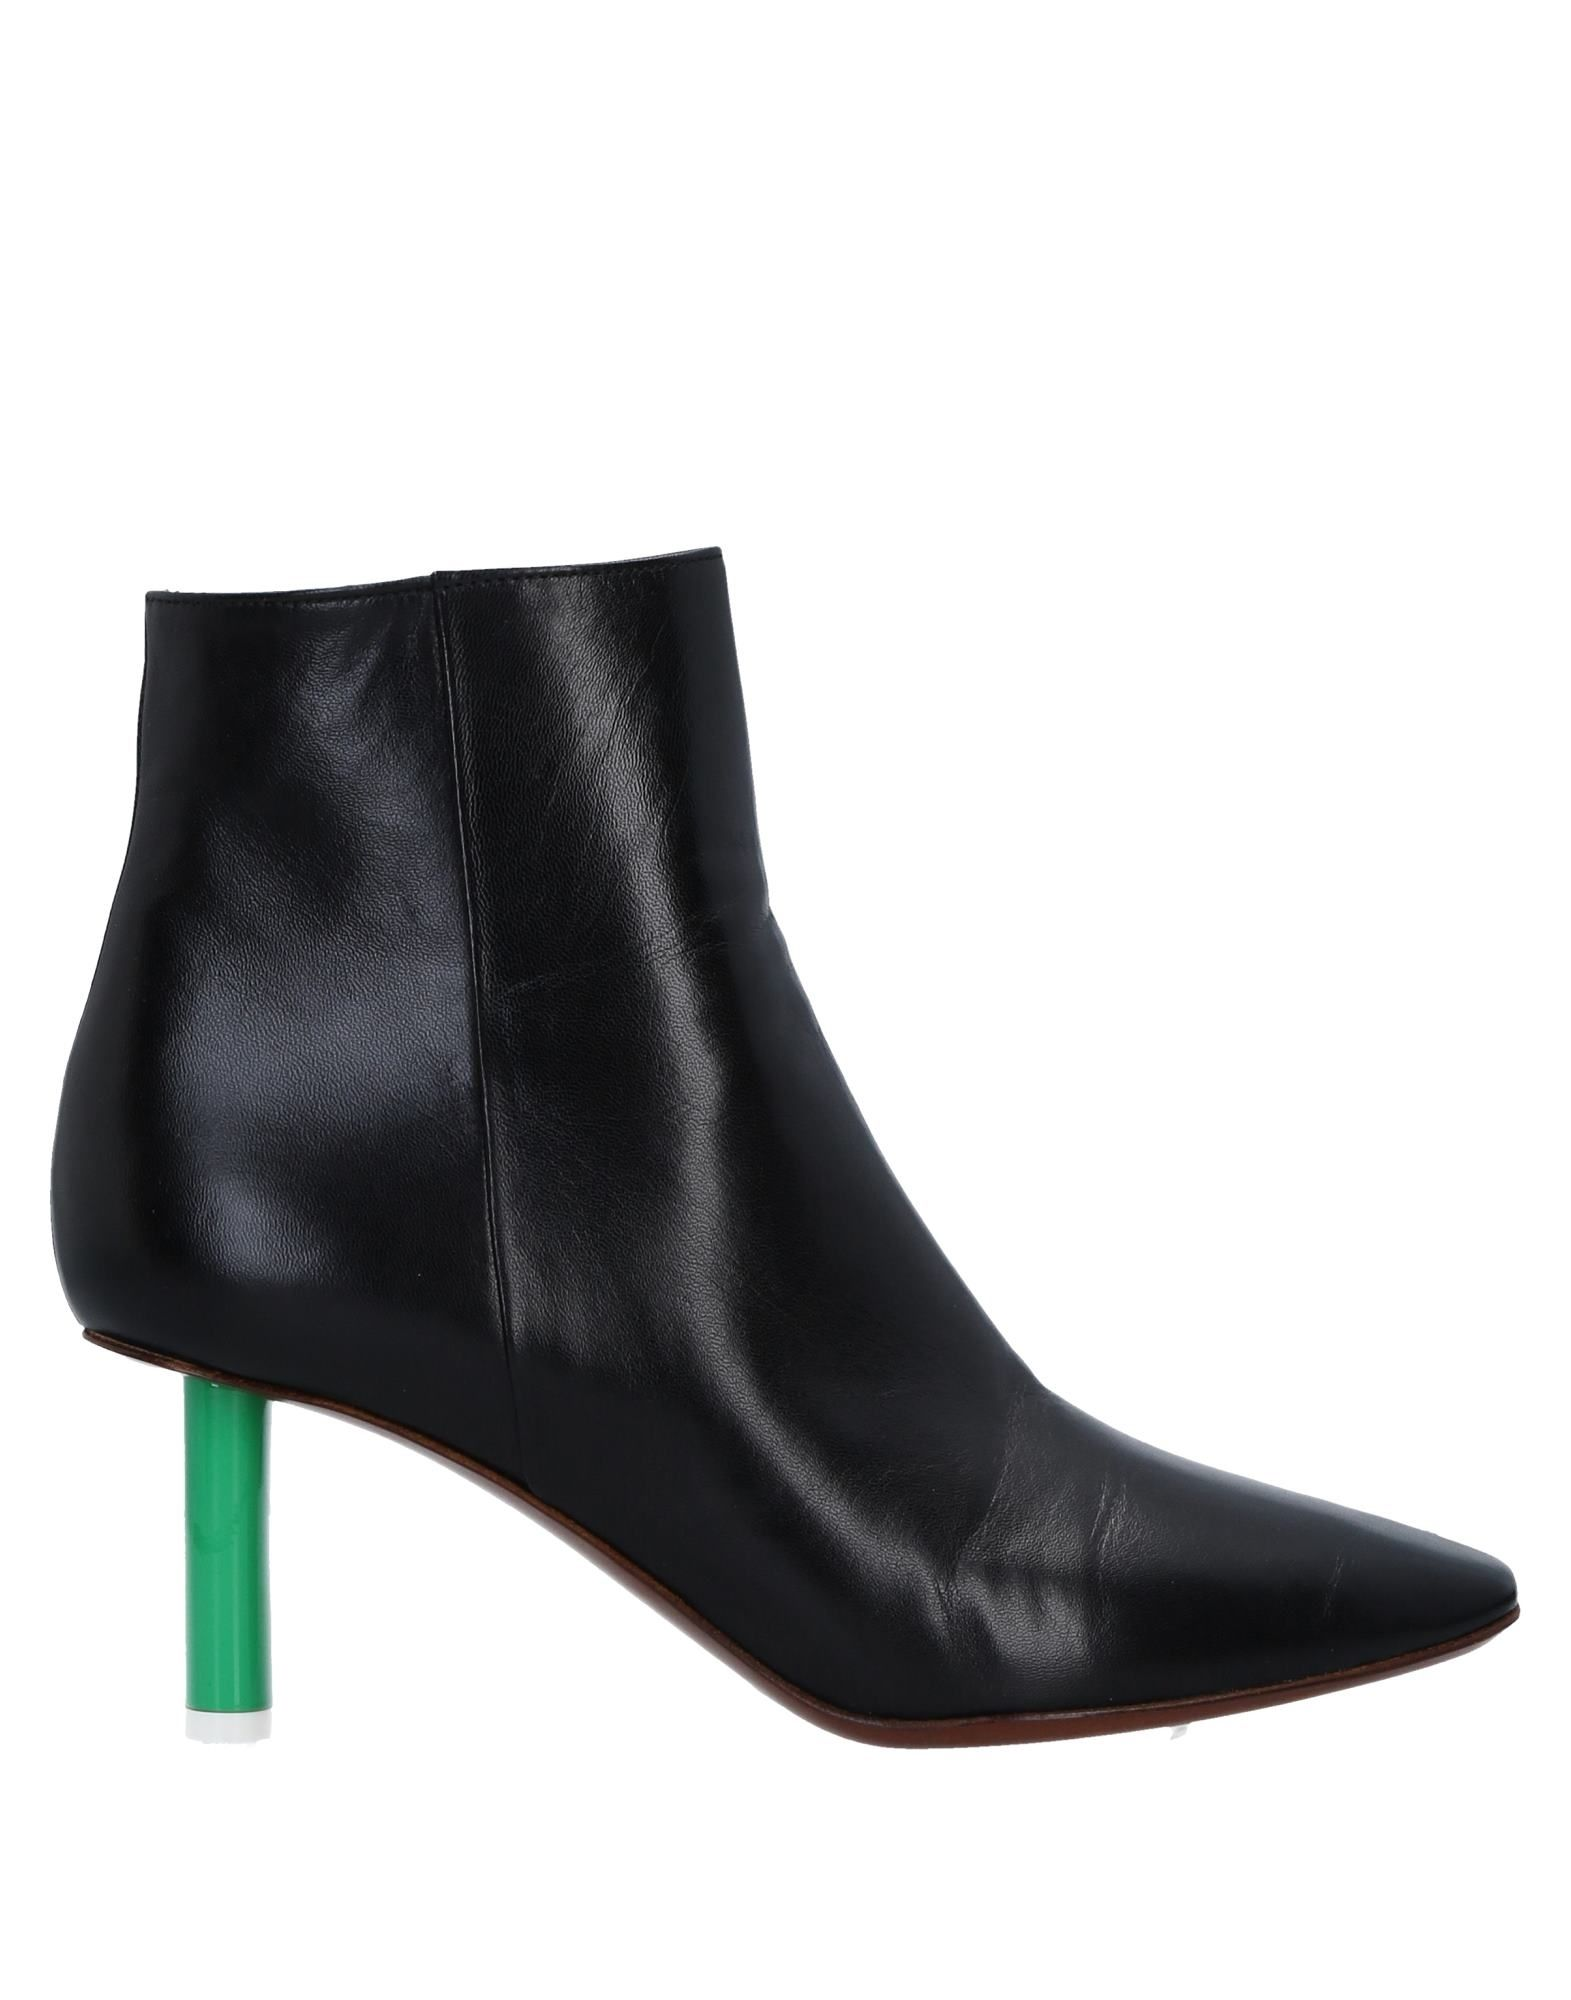 Vetements Ankle Boot - Women Vetements Ankle Boots online 11527470TB on  Australia - 11527470TB online 8773ae